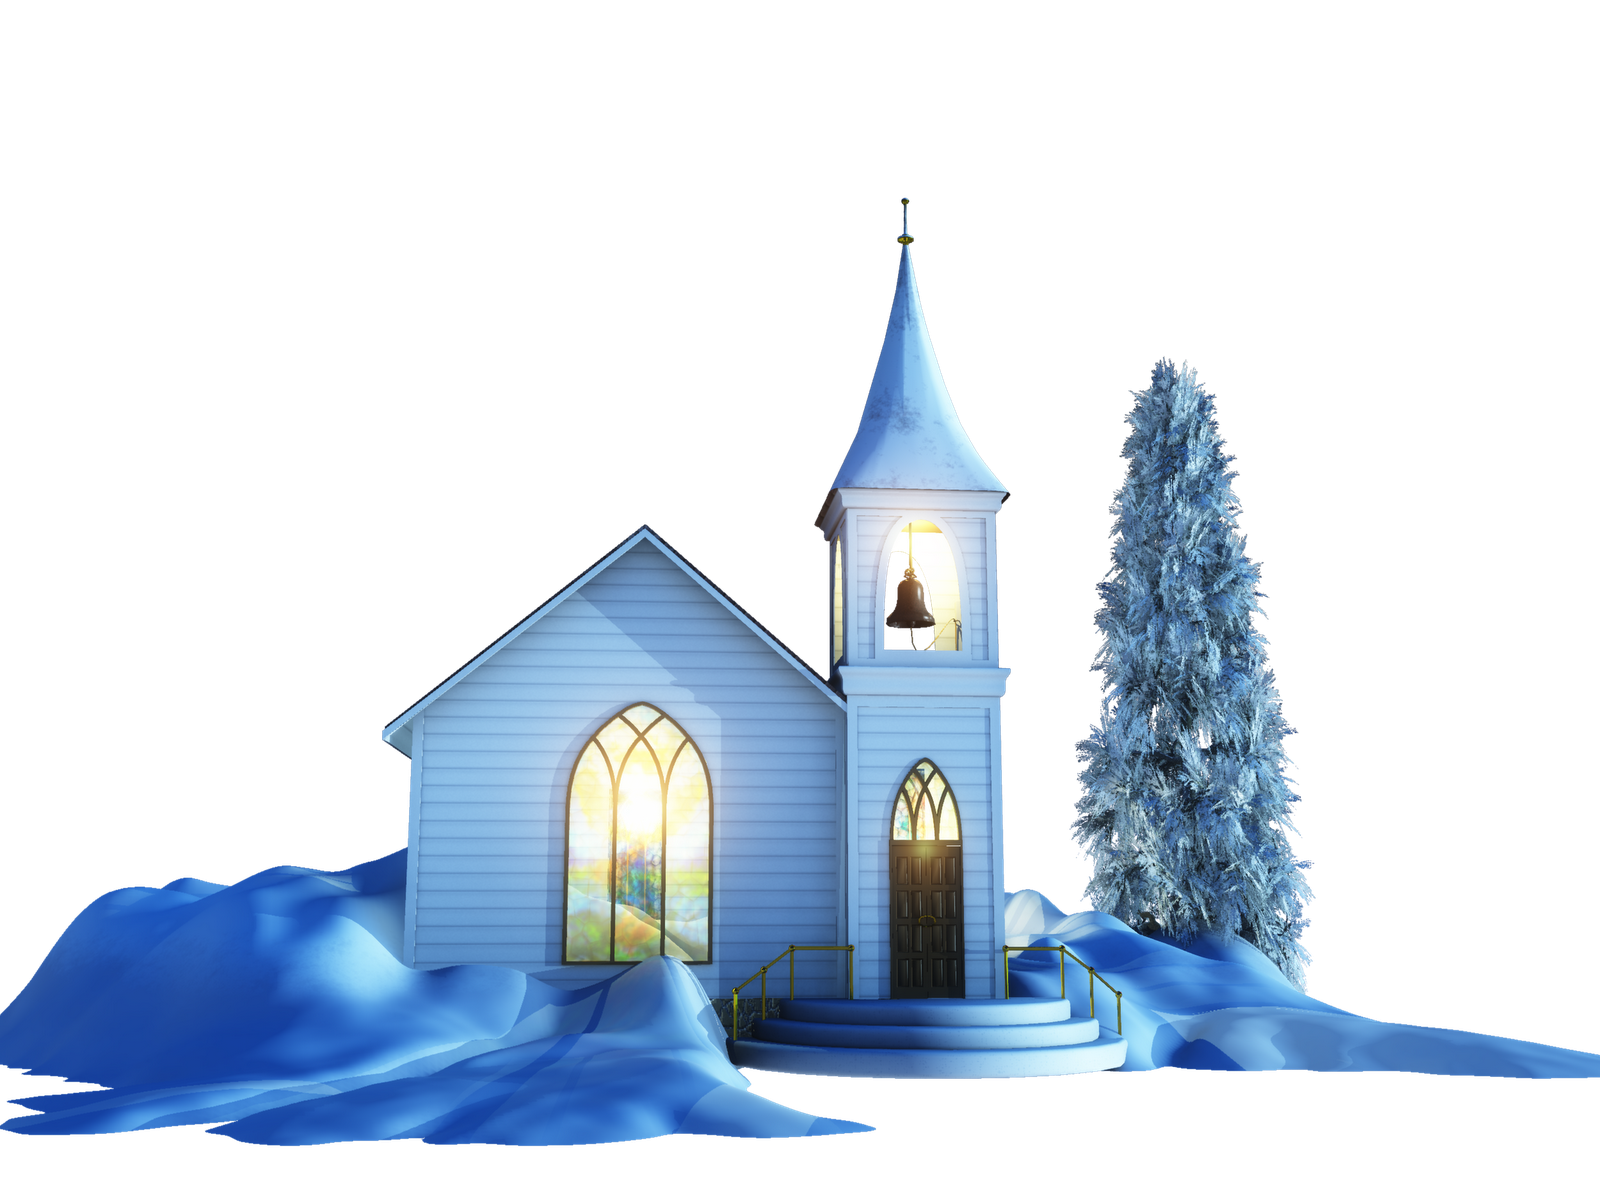 Free clipart church. Png transparent images all